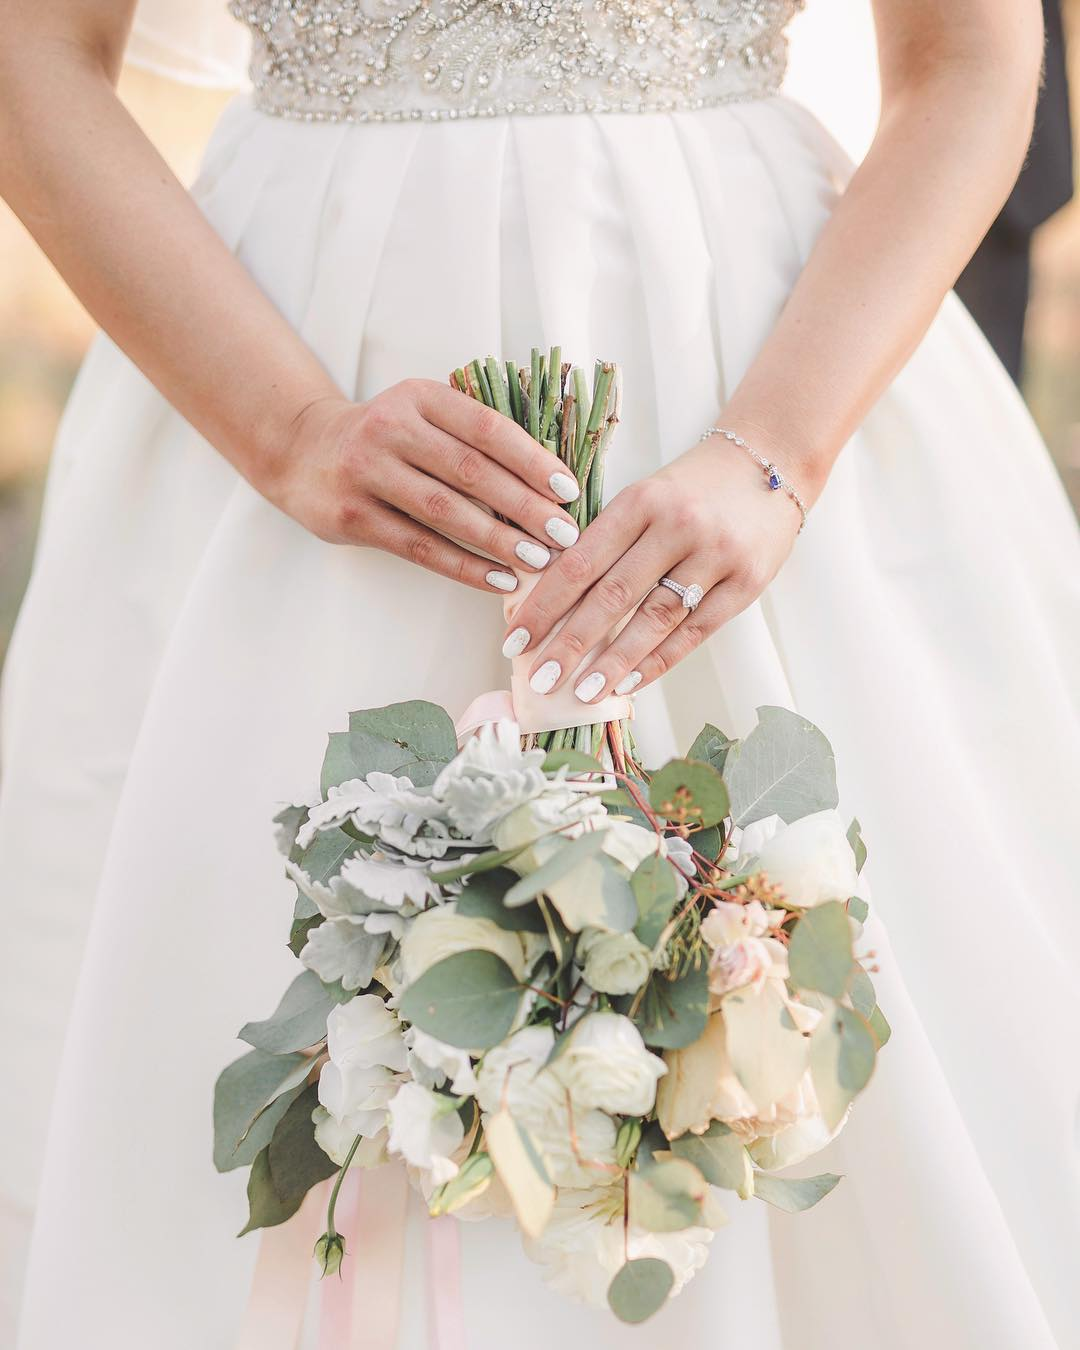 top-35-wedding-nail-ideas-for-brides-2020